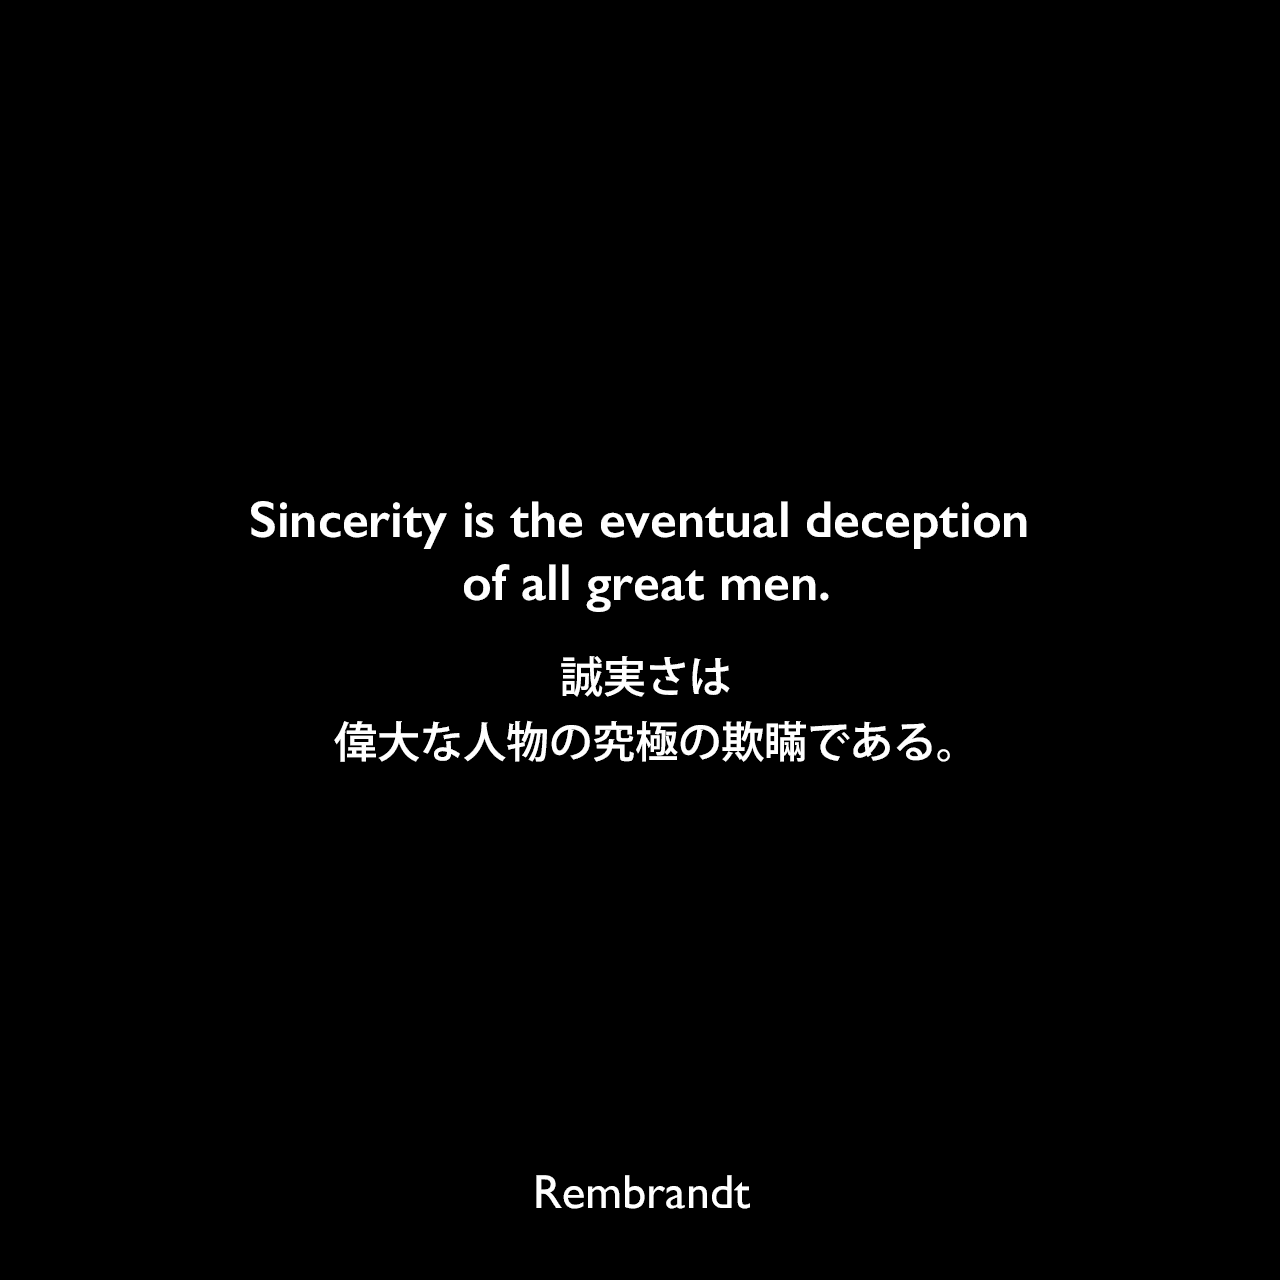 Sincerity is the eventual deception of all great men.誠実さは、偉大な人物の究極の欺瞞である。Rembrandt